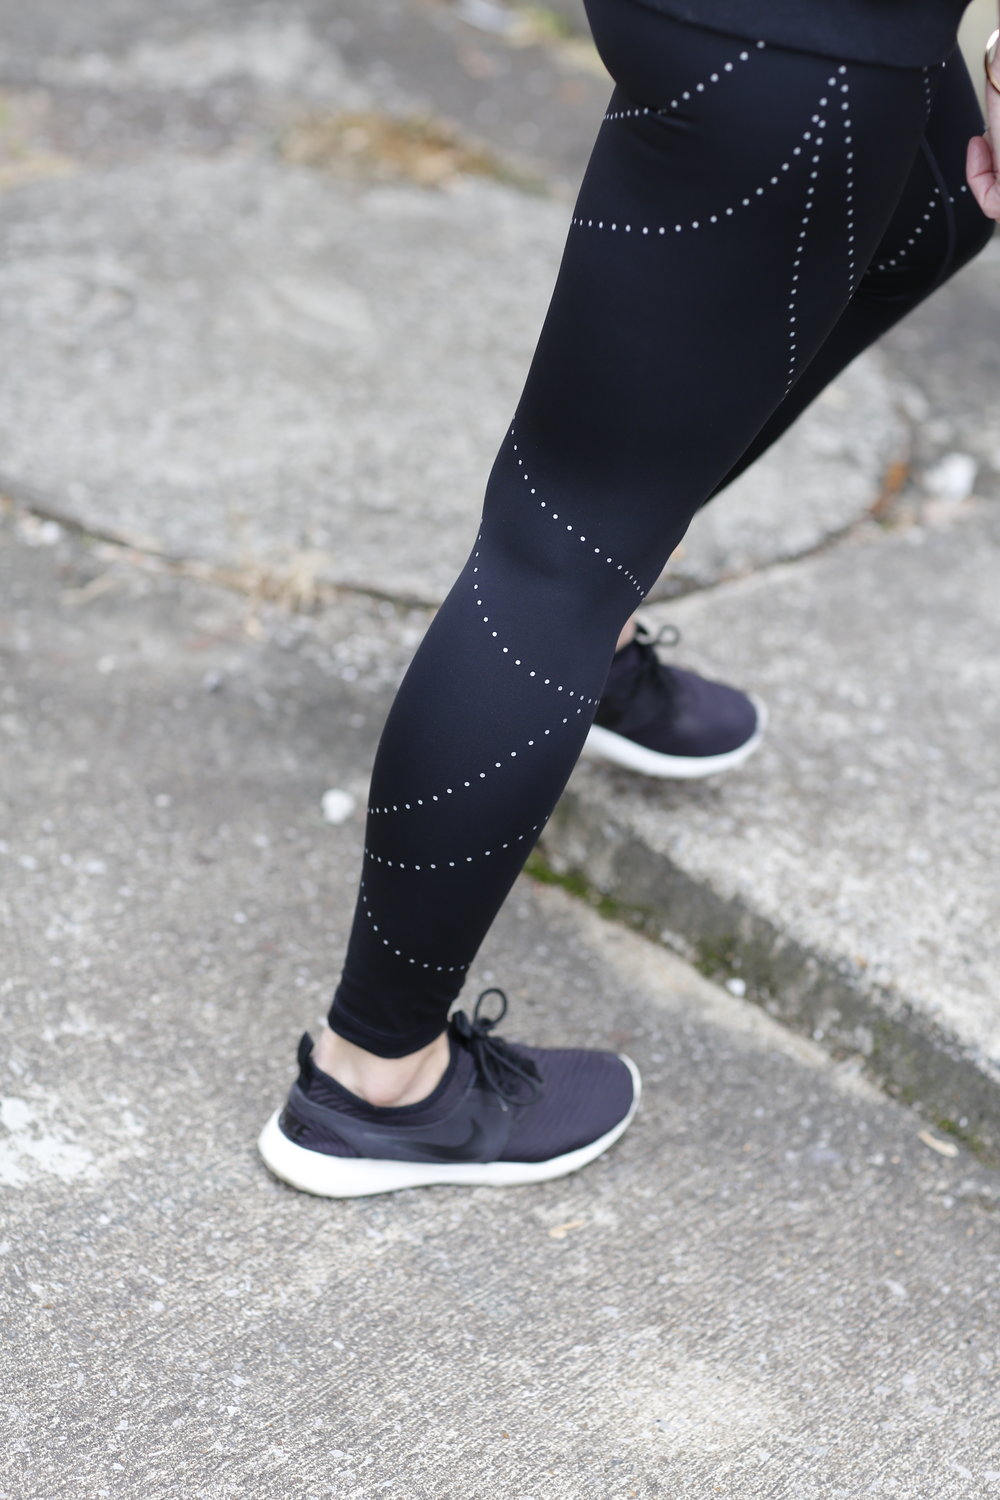 zella aero reflective running leggings